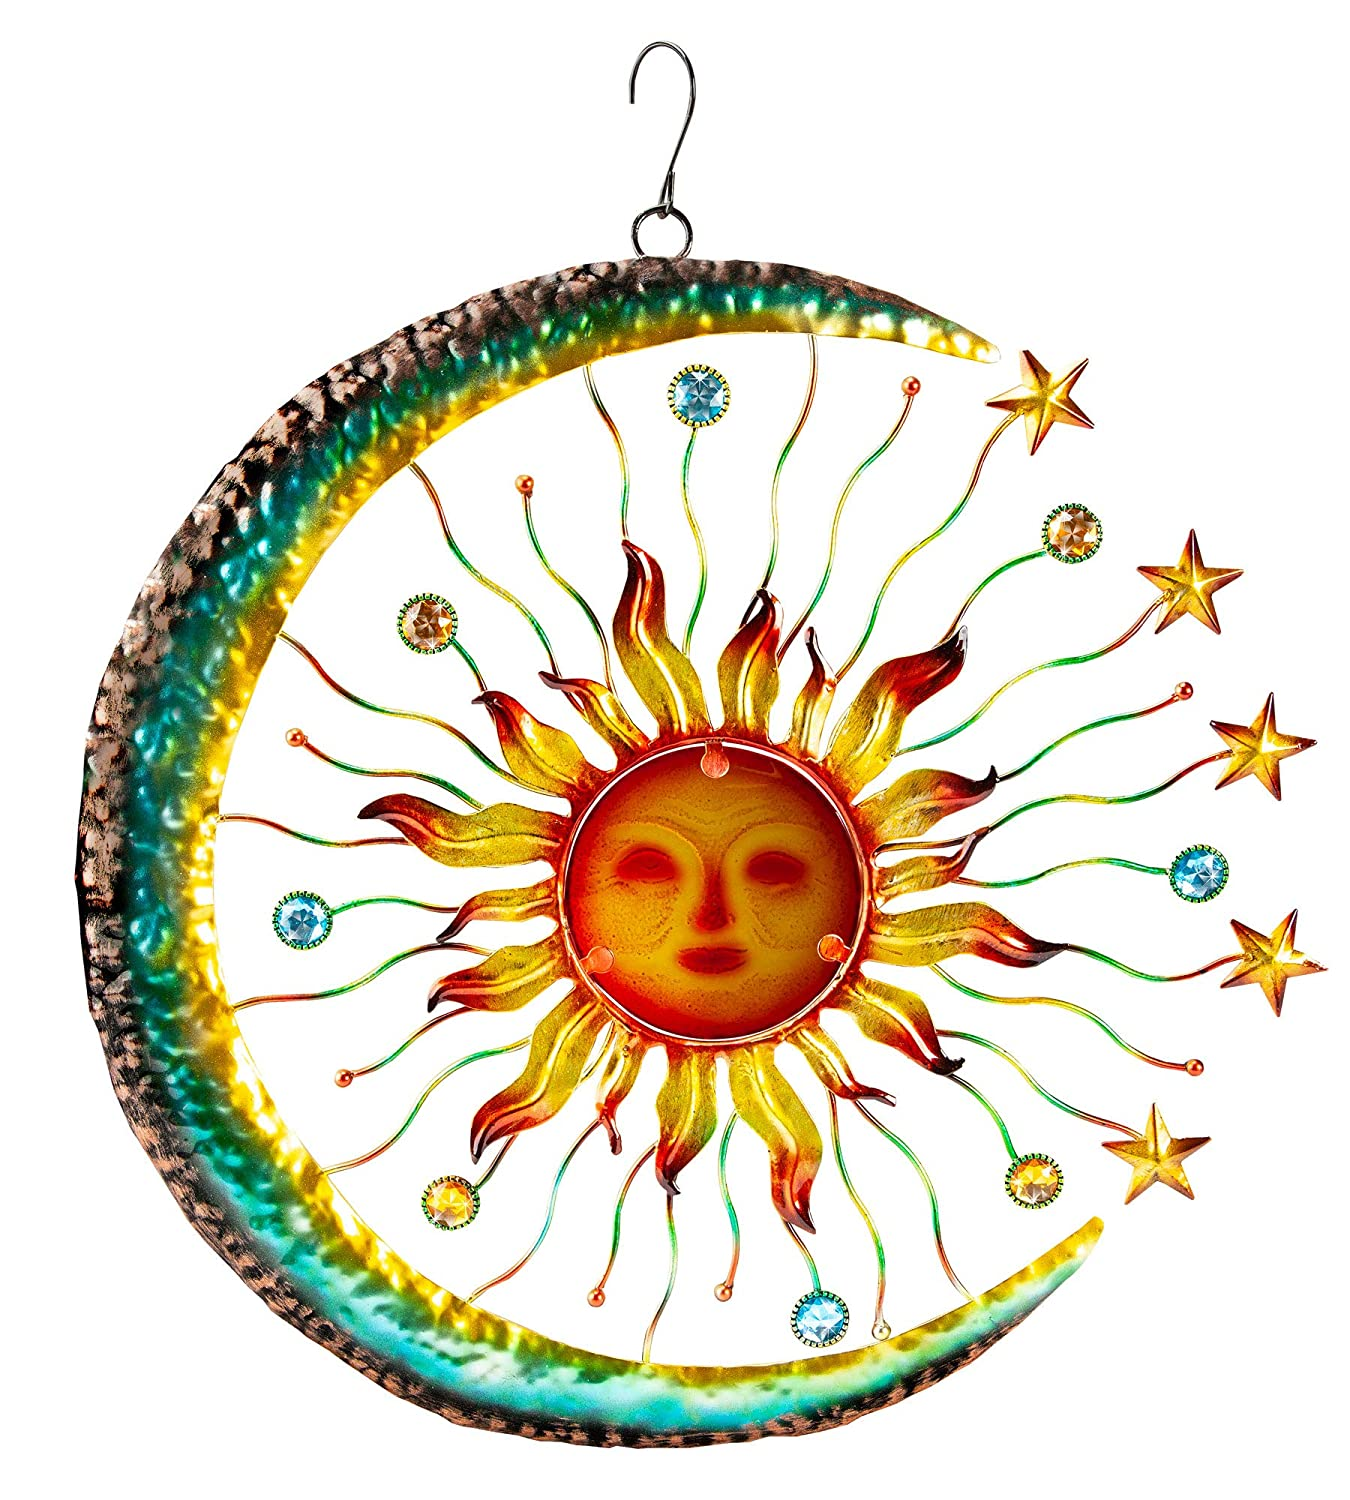 The Paragon Sun Face Accented by Stars and Moon, Glass Sun Wall Art Indoor or Outdoor Home Decor